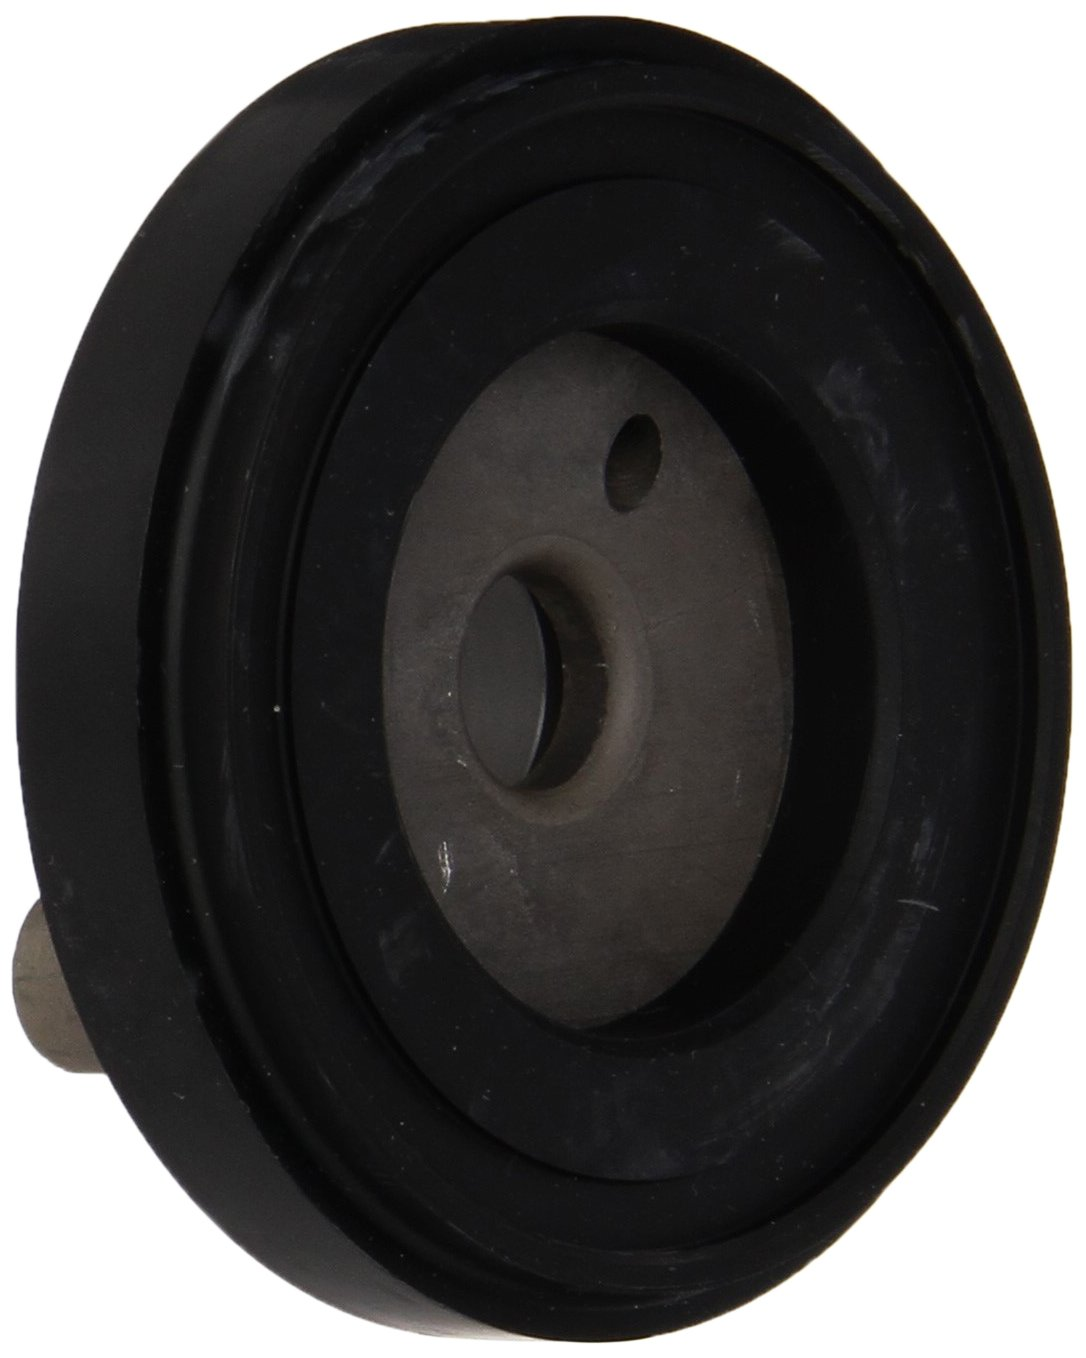 Hitachi 887859 Replacement Part for Power Tool Head Cap